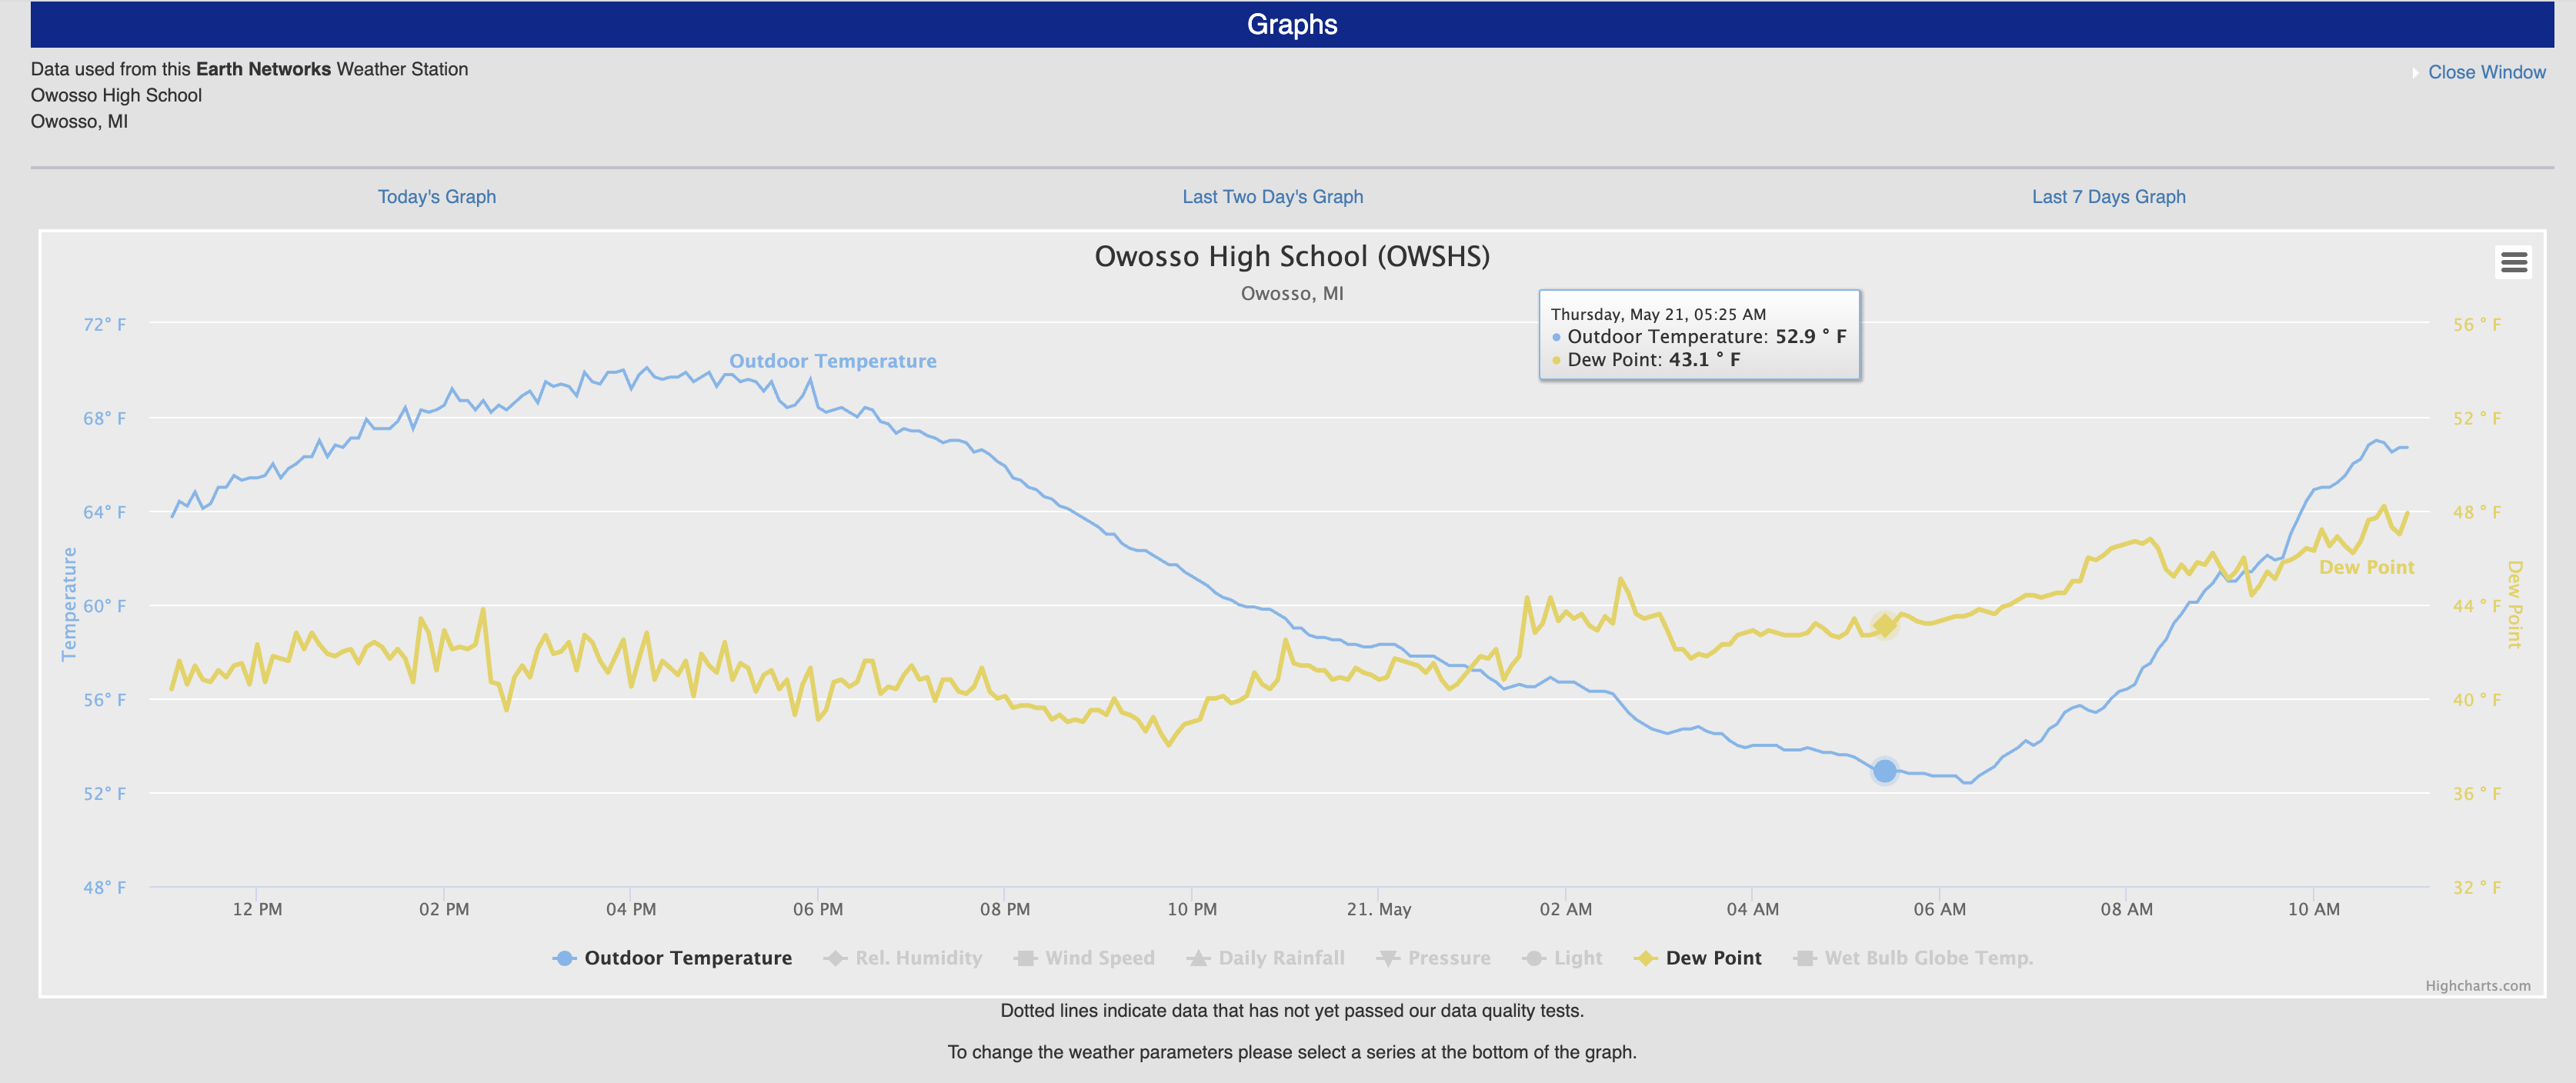 A weather station online sends real-time data to our online weather centers. This is a graph of real-time weather data including temperature and dew point from our hyperlocal weather station at Owosso High school